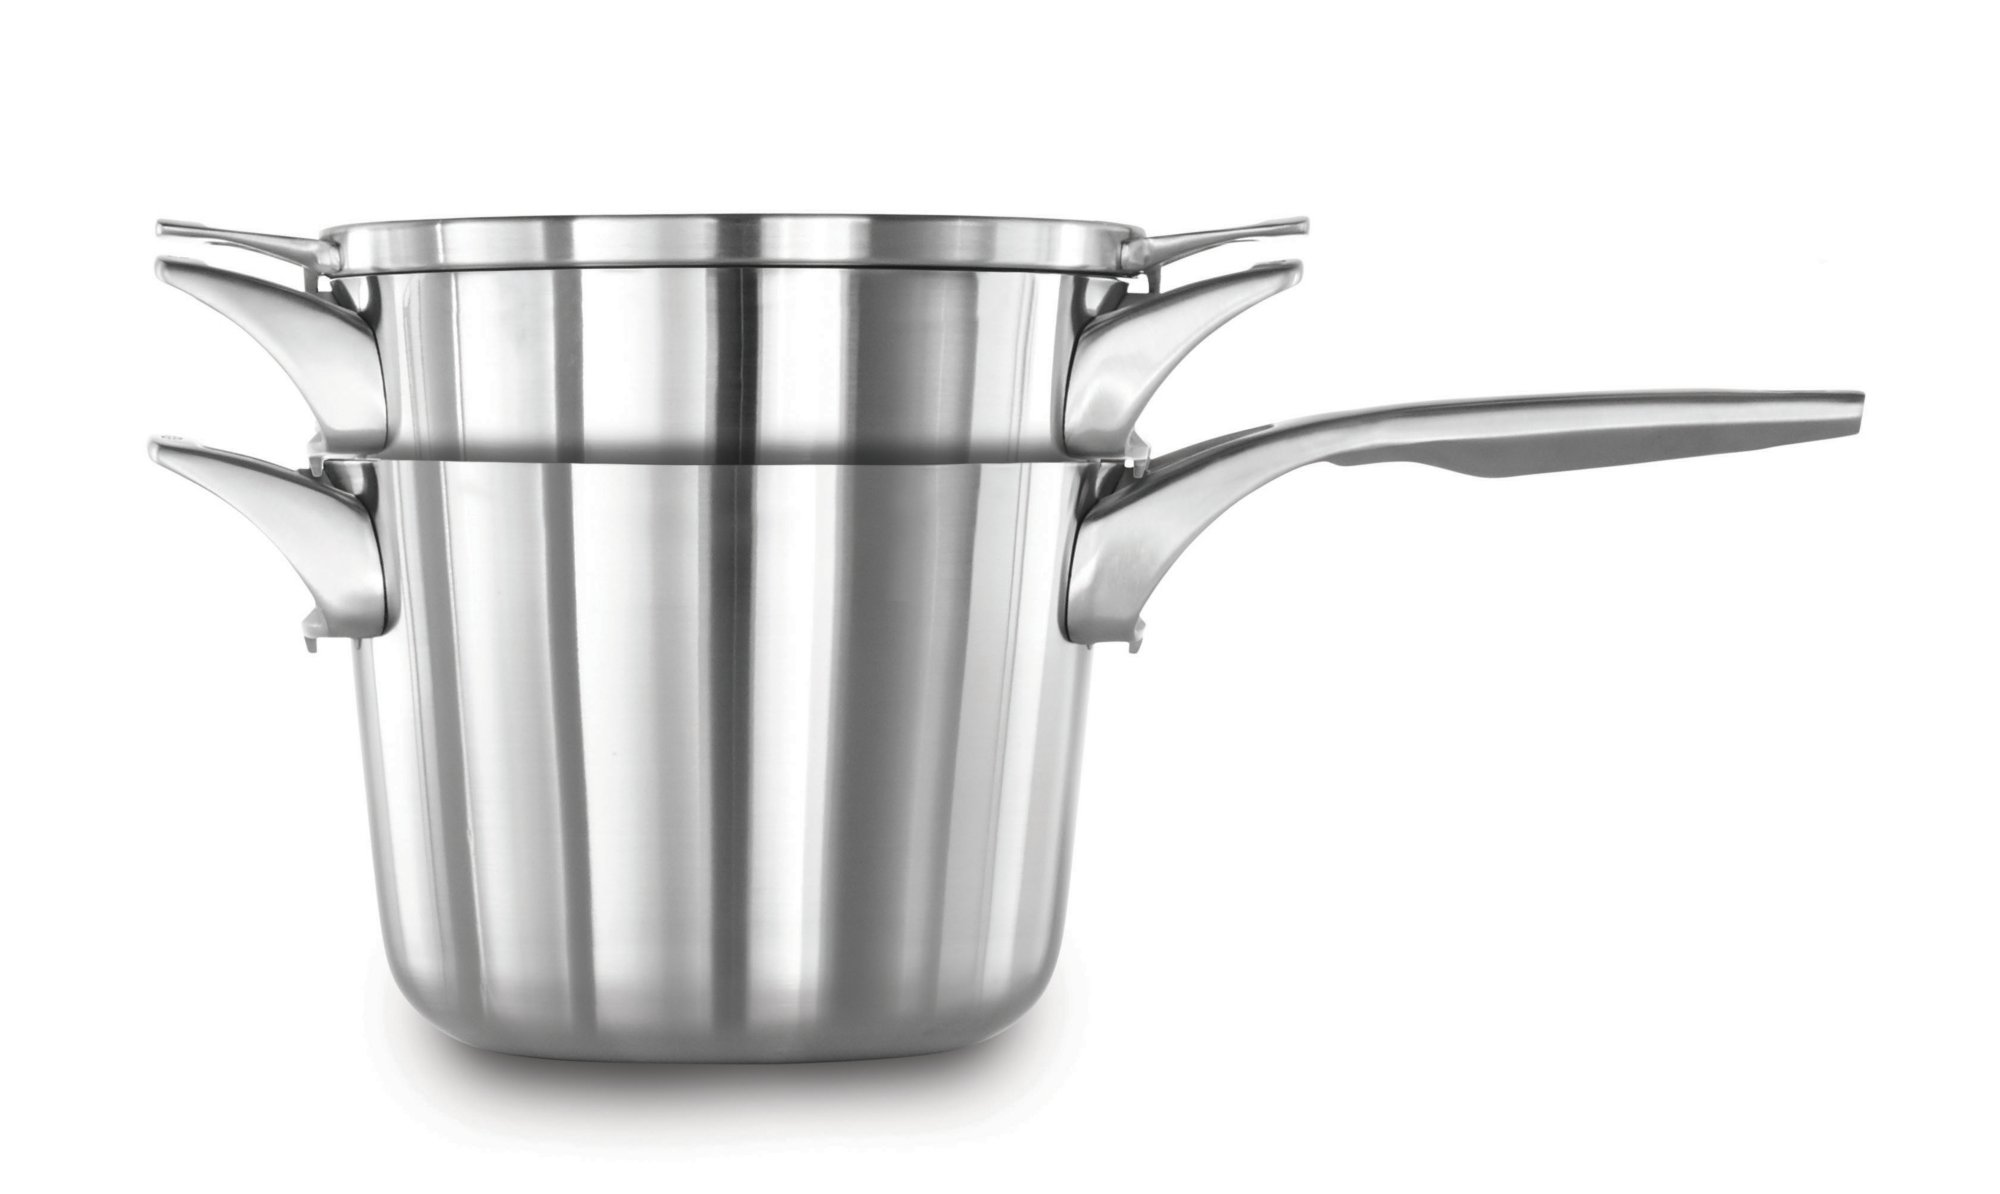 Calphalon Premier? Space Saving Stainless Steel 4.5 qt. Soup Pot with Cover